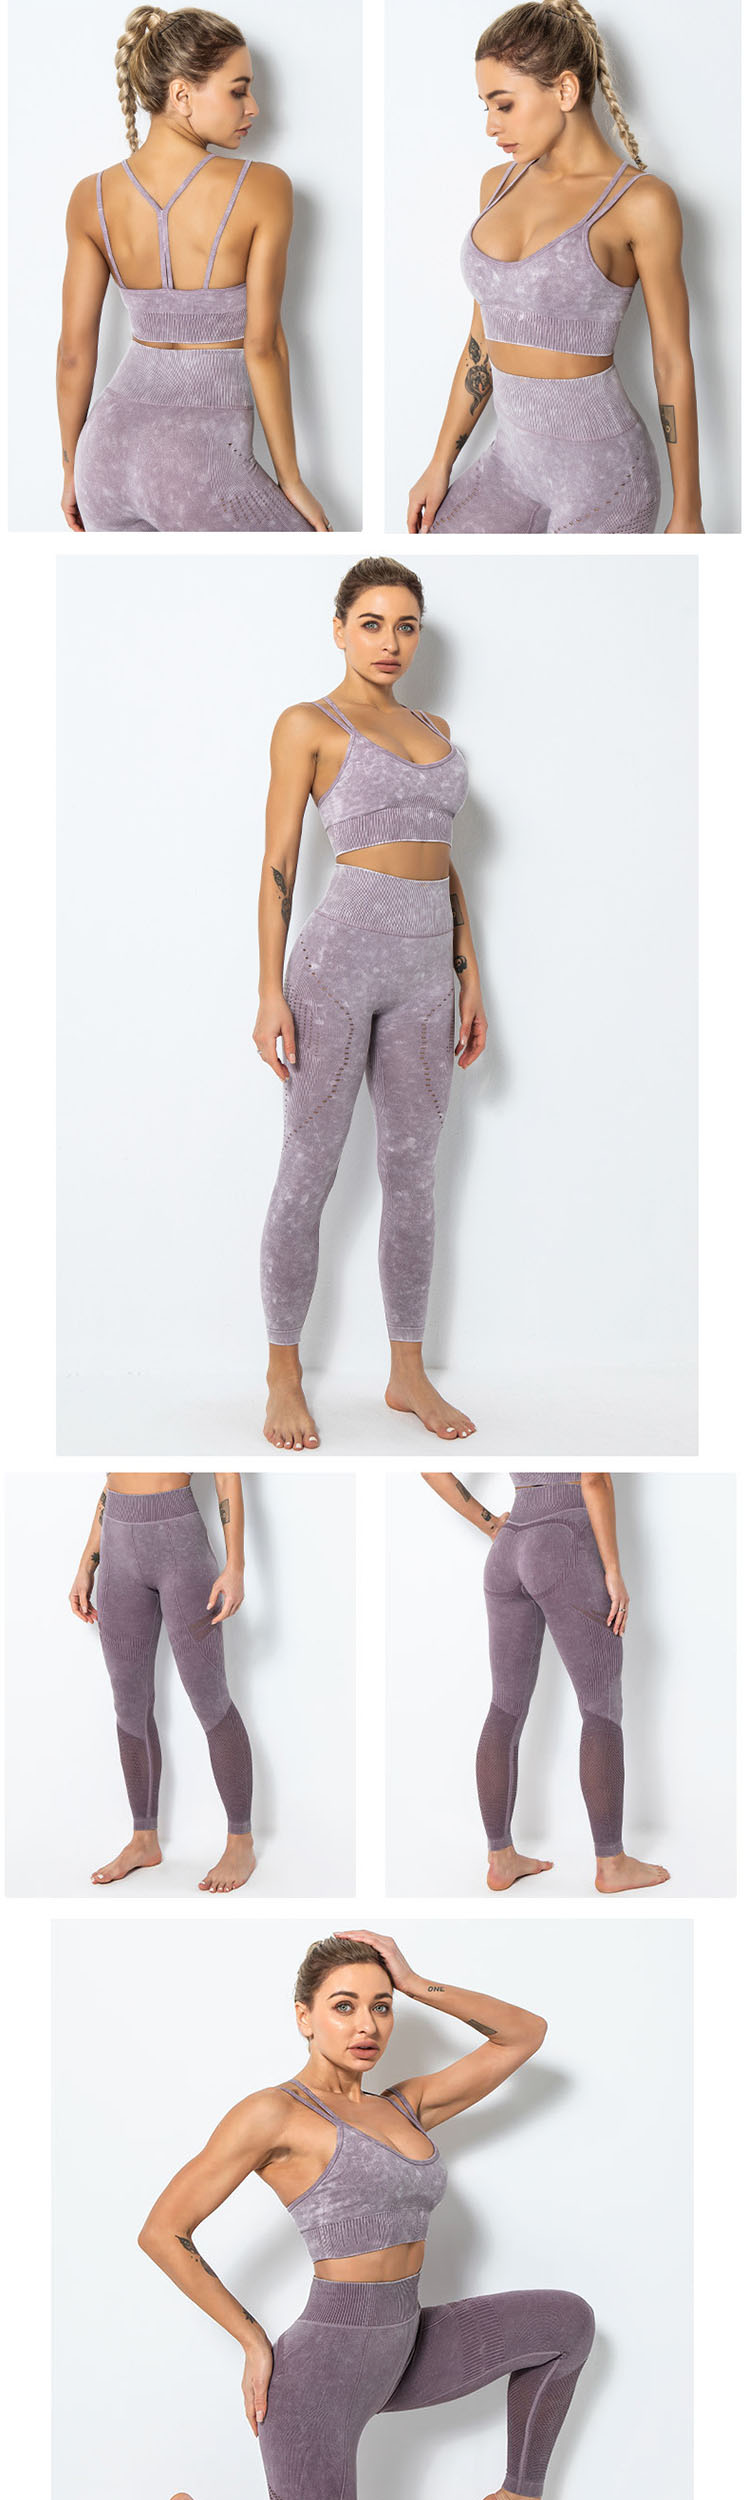 Use sheer yoga leggings to create close-fitting and support